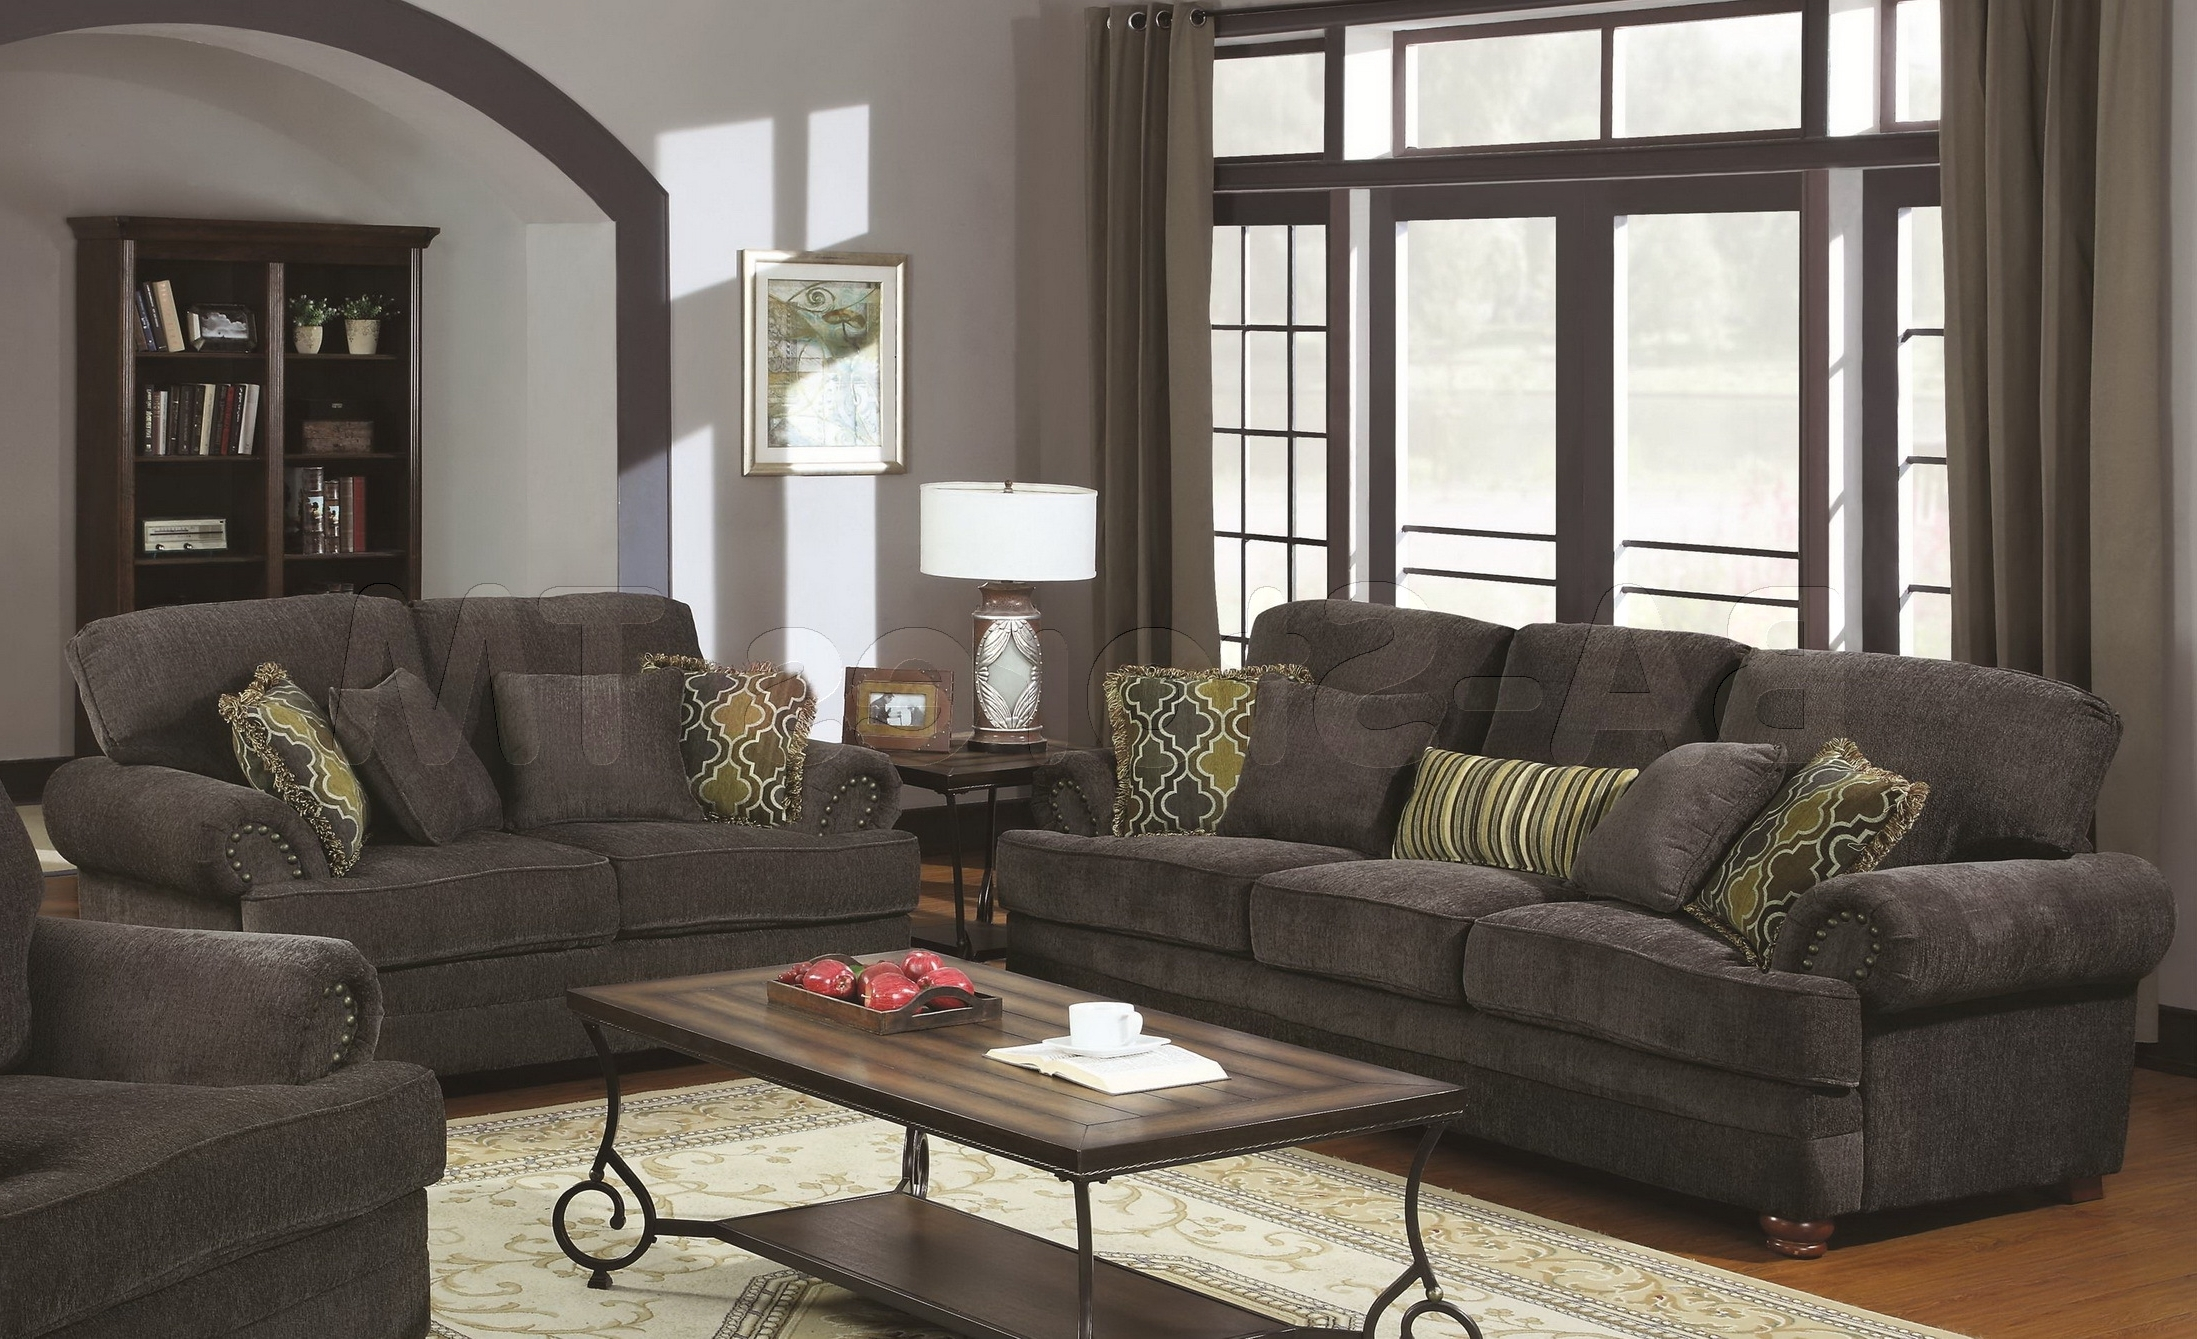 Grey Sofa Chairs Within Preferred Grey Sofa Setcolton Smokey Grey Chenille 2 Pc Sofa Set–Sofa And (View 9 of 20)